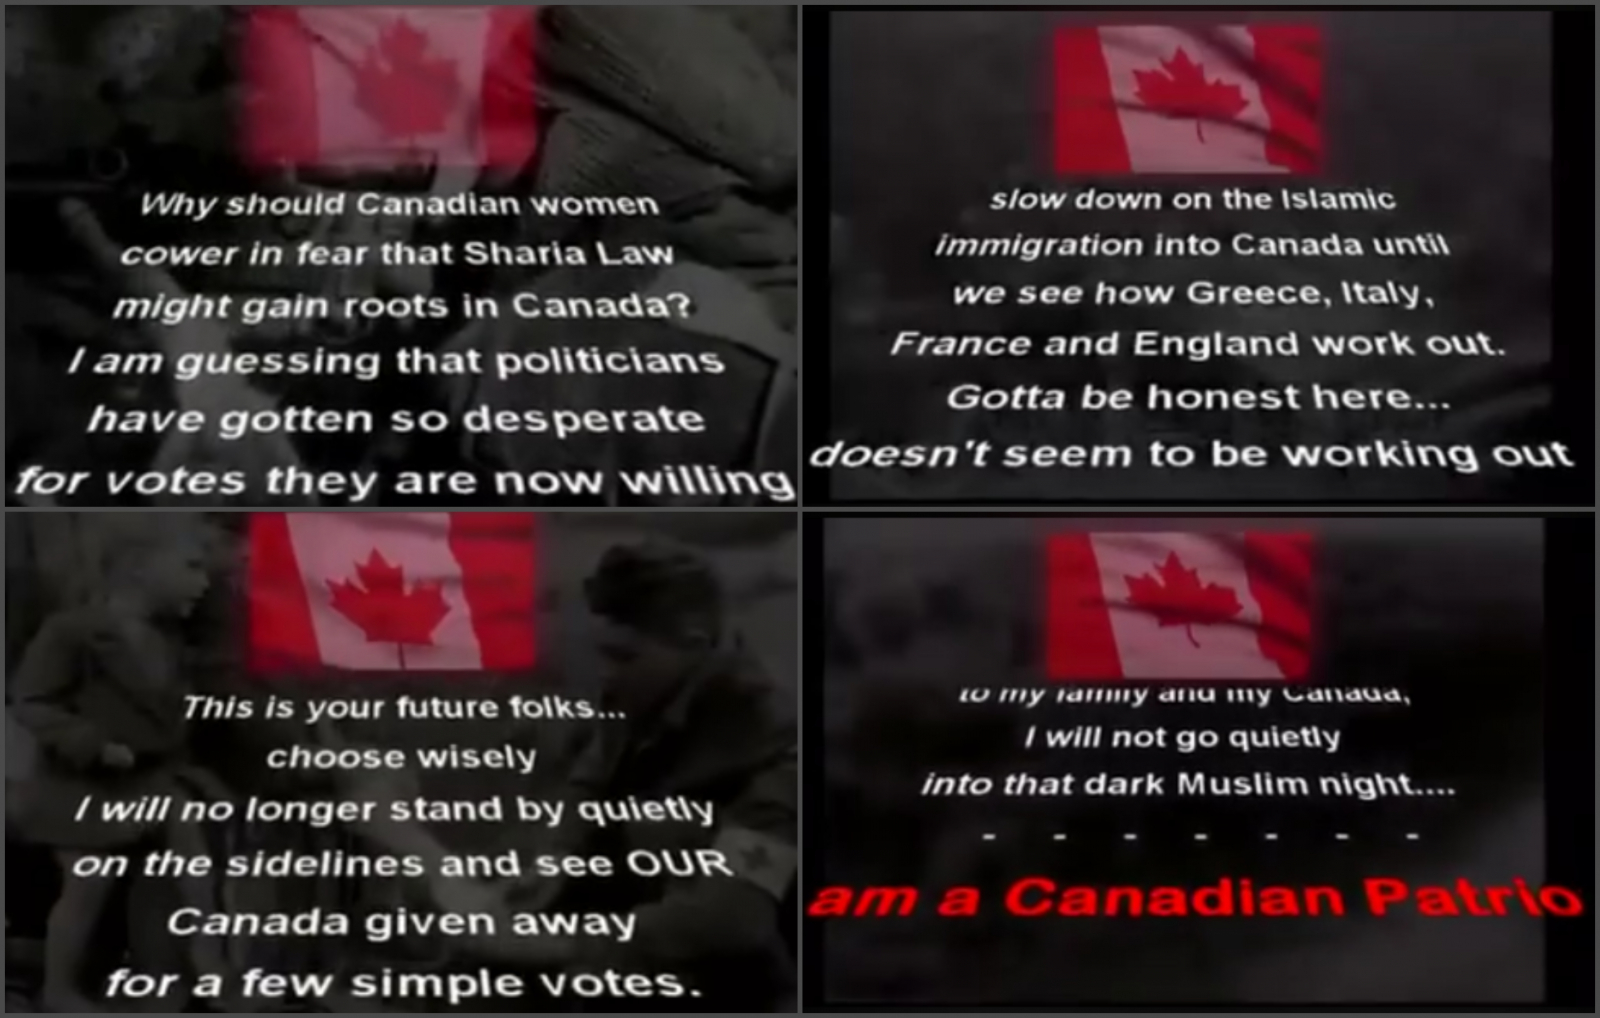 National Conservative News Network Canada Facebook Page Islamophobic Video Still Images